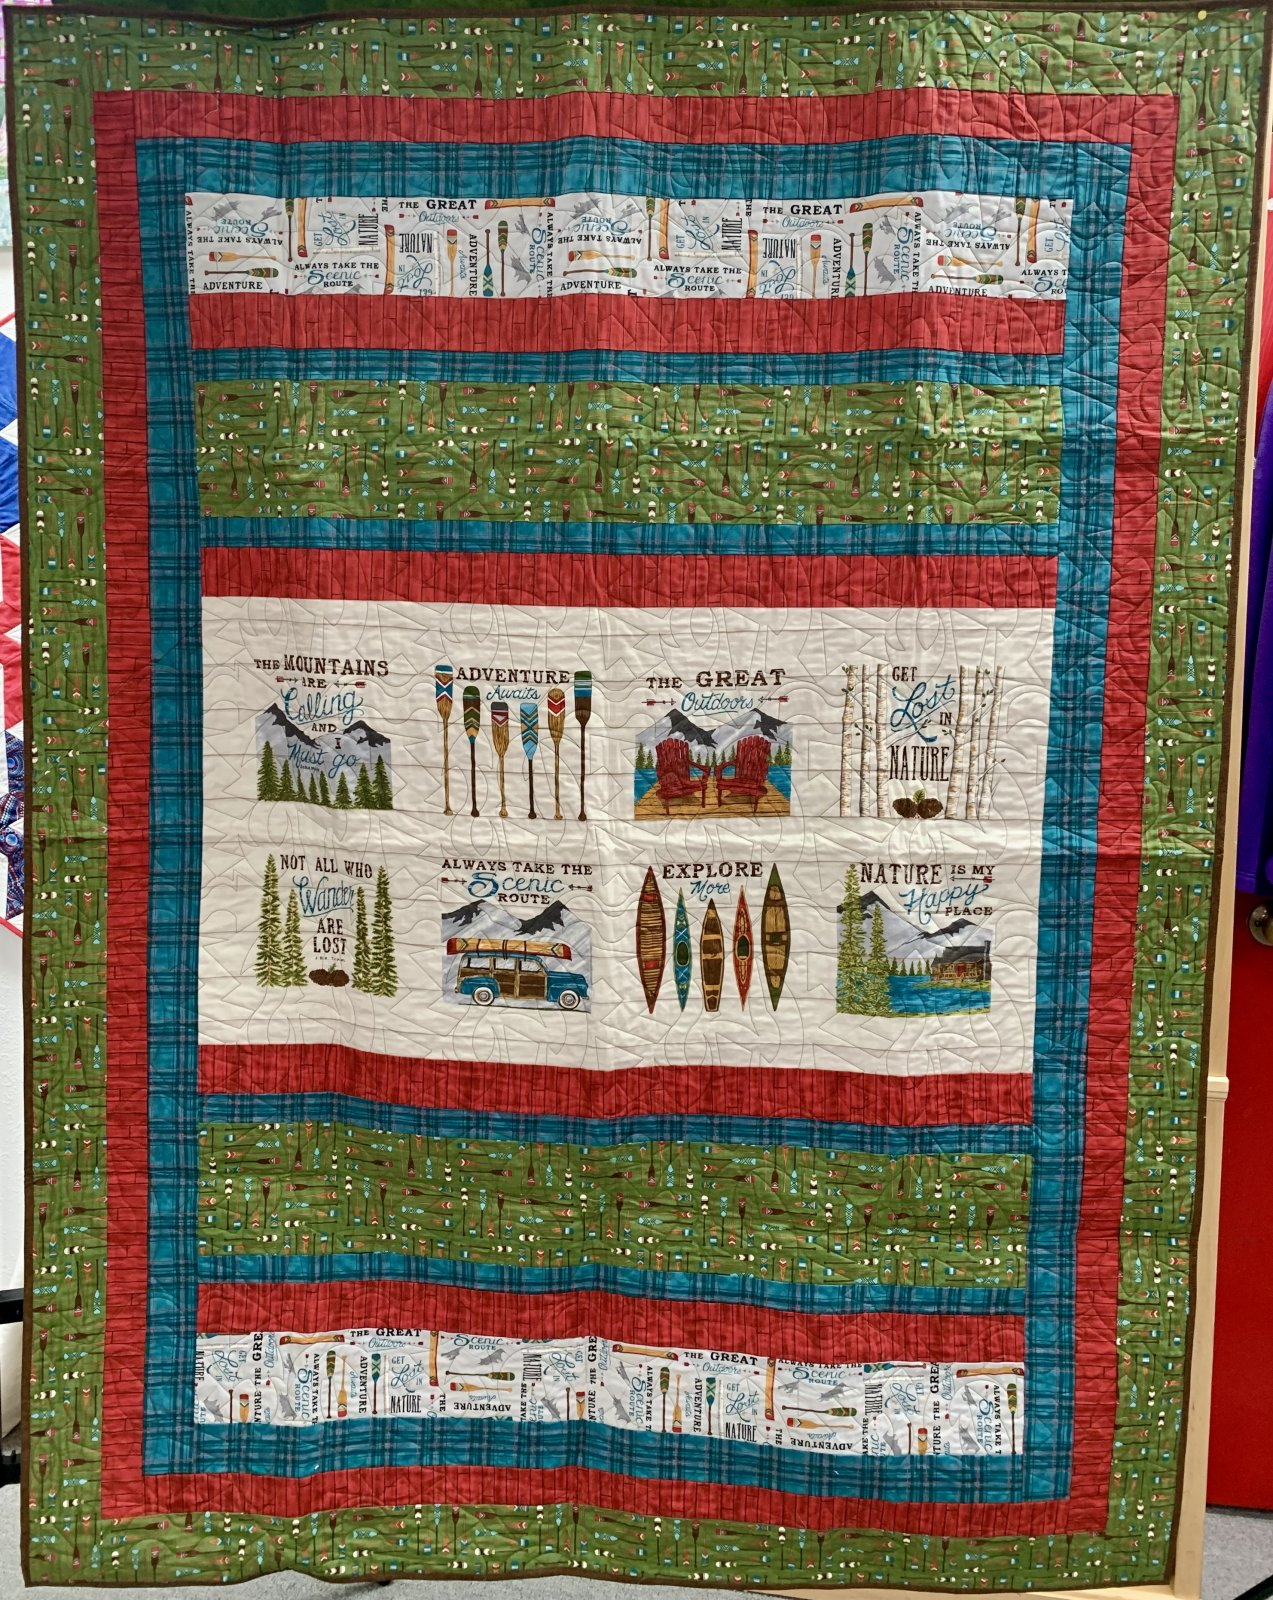 The Great Outdoors Quilt